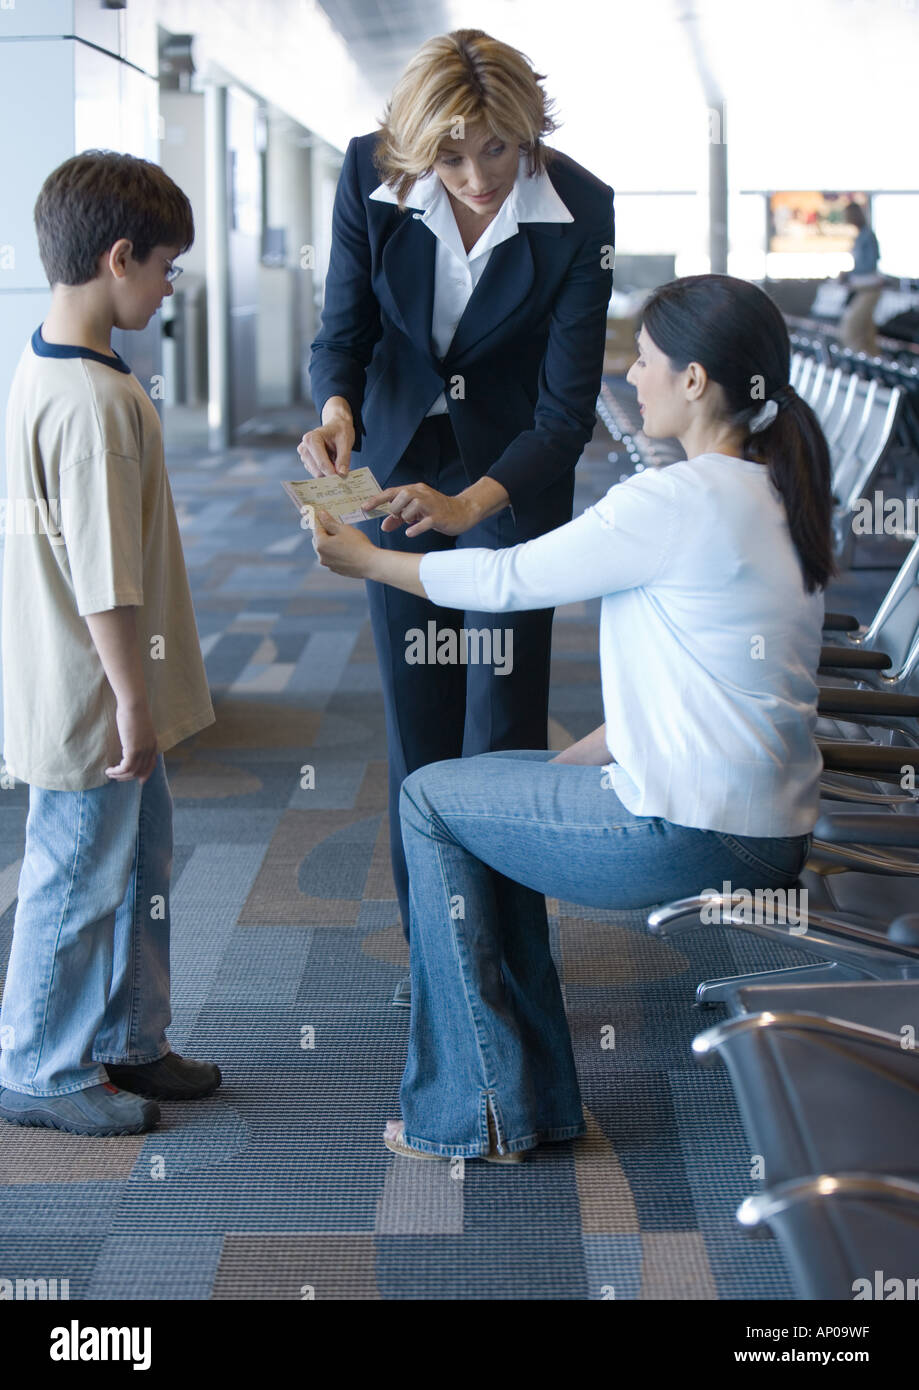 Airline attendant helping travelers - Stock Image